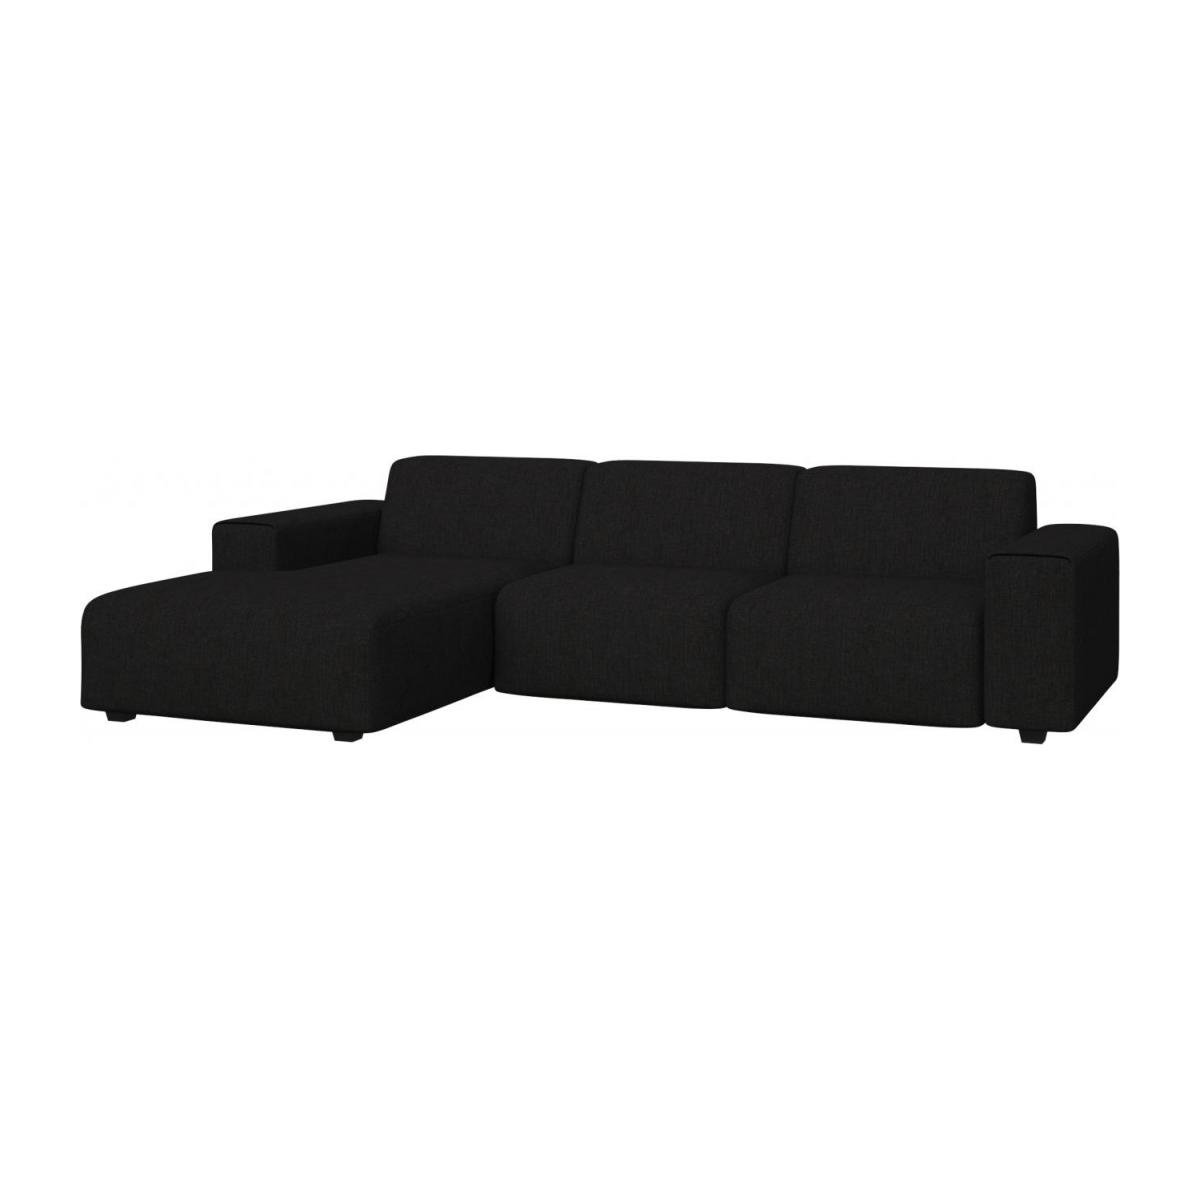 3 seater sofa with chaise longue on the left in Ancio fabric, nero n°1